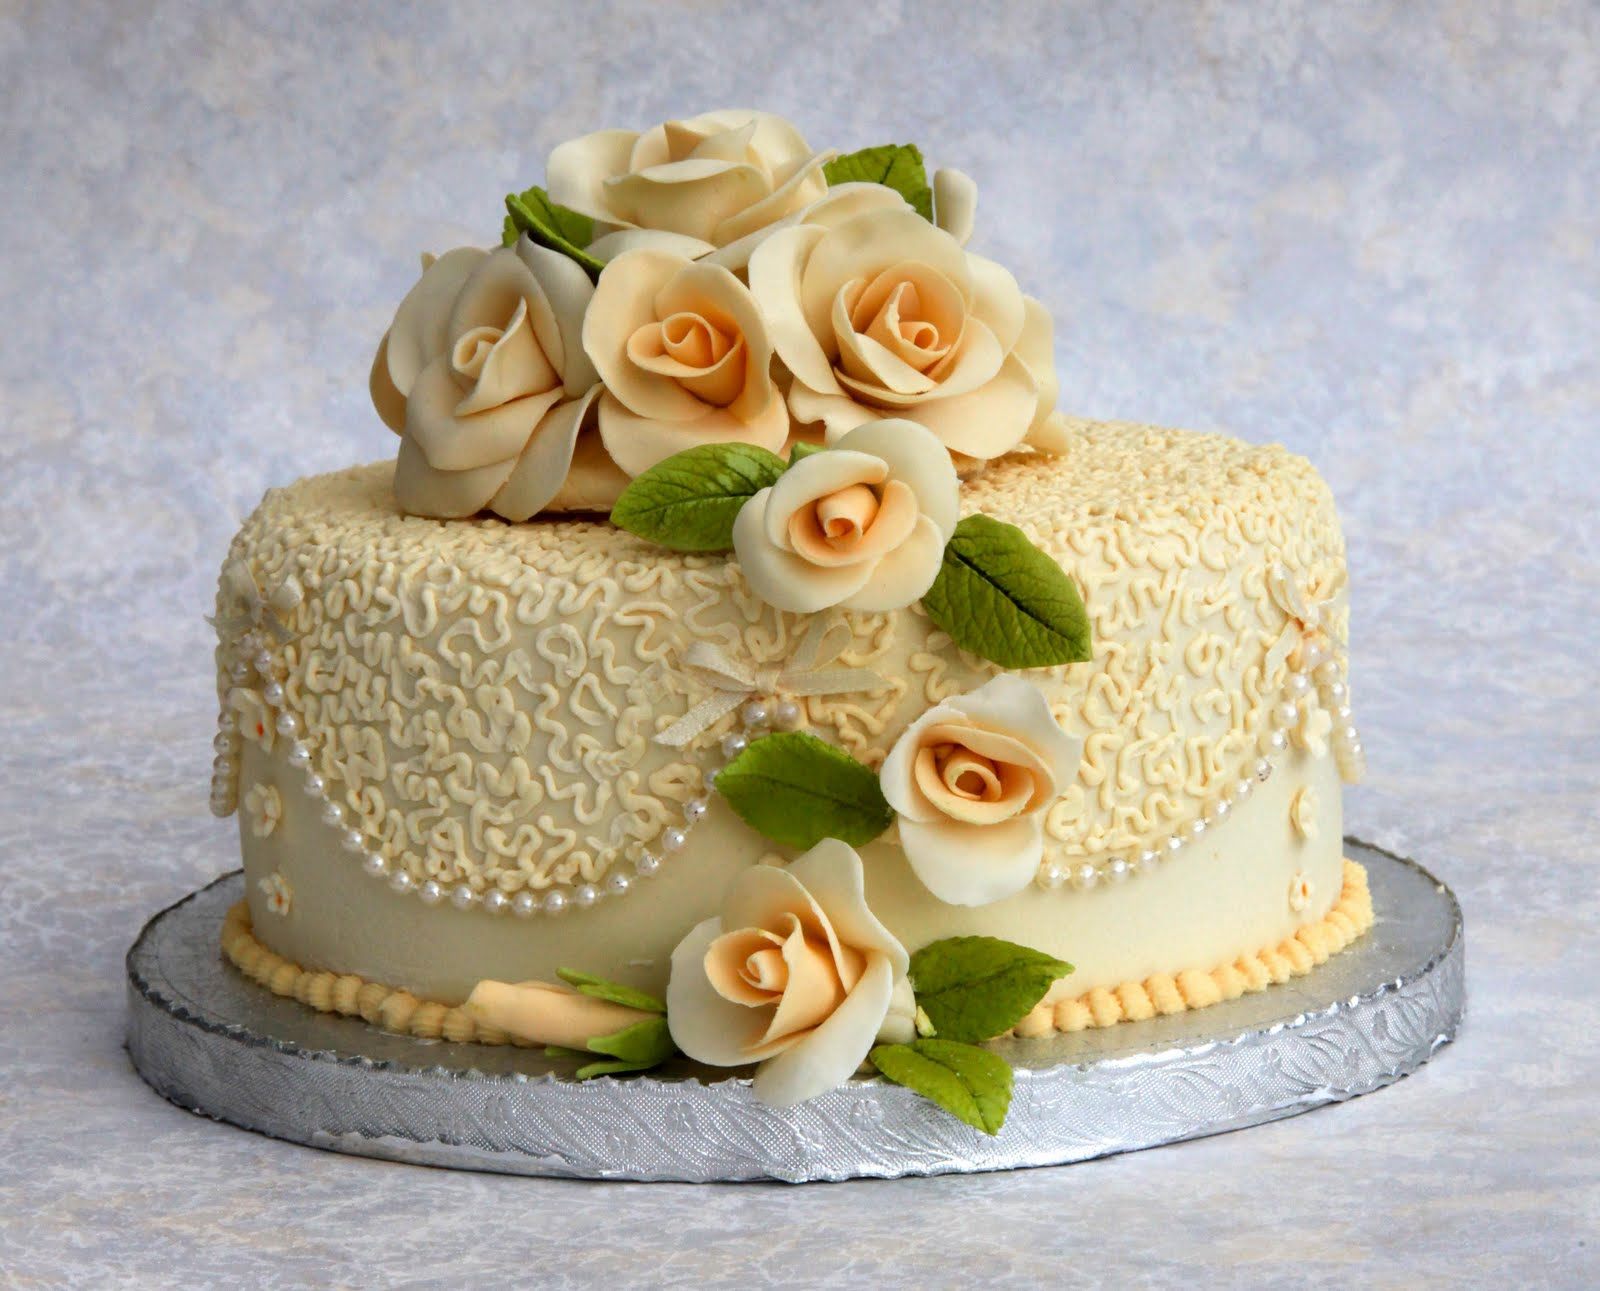 most beautiful wedding cake images 25 most beautiful cake selections page 4 of 25 17547